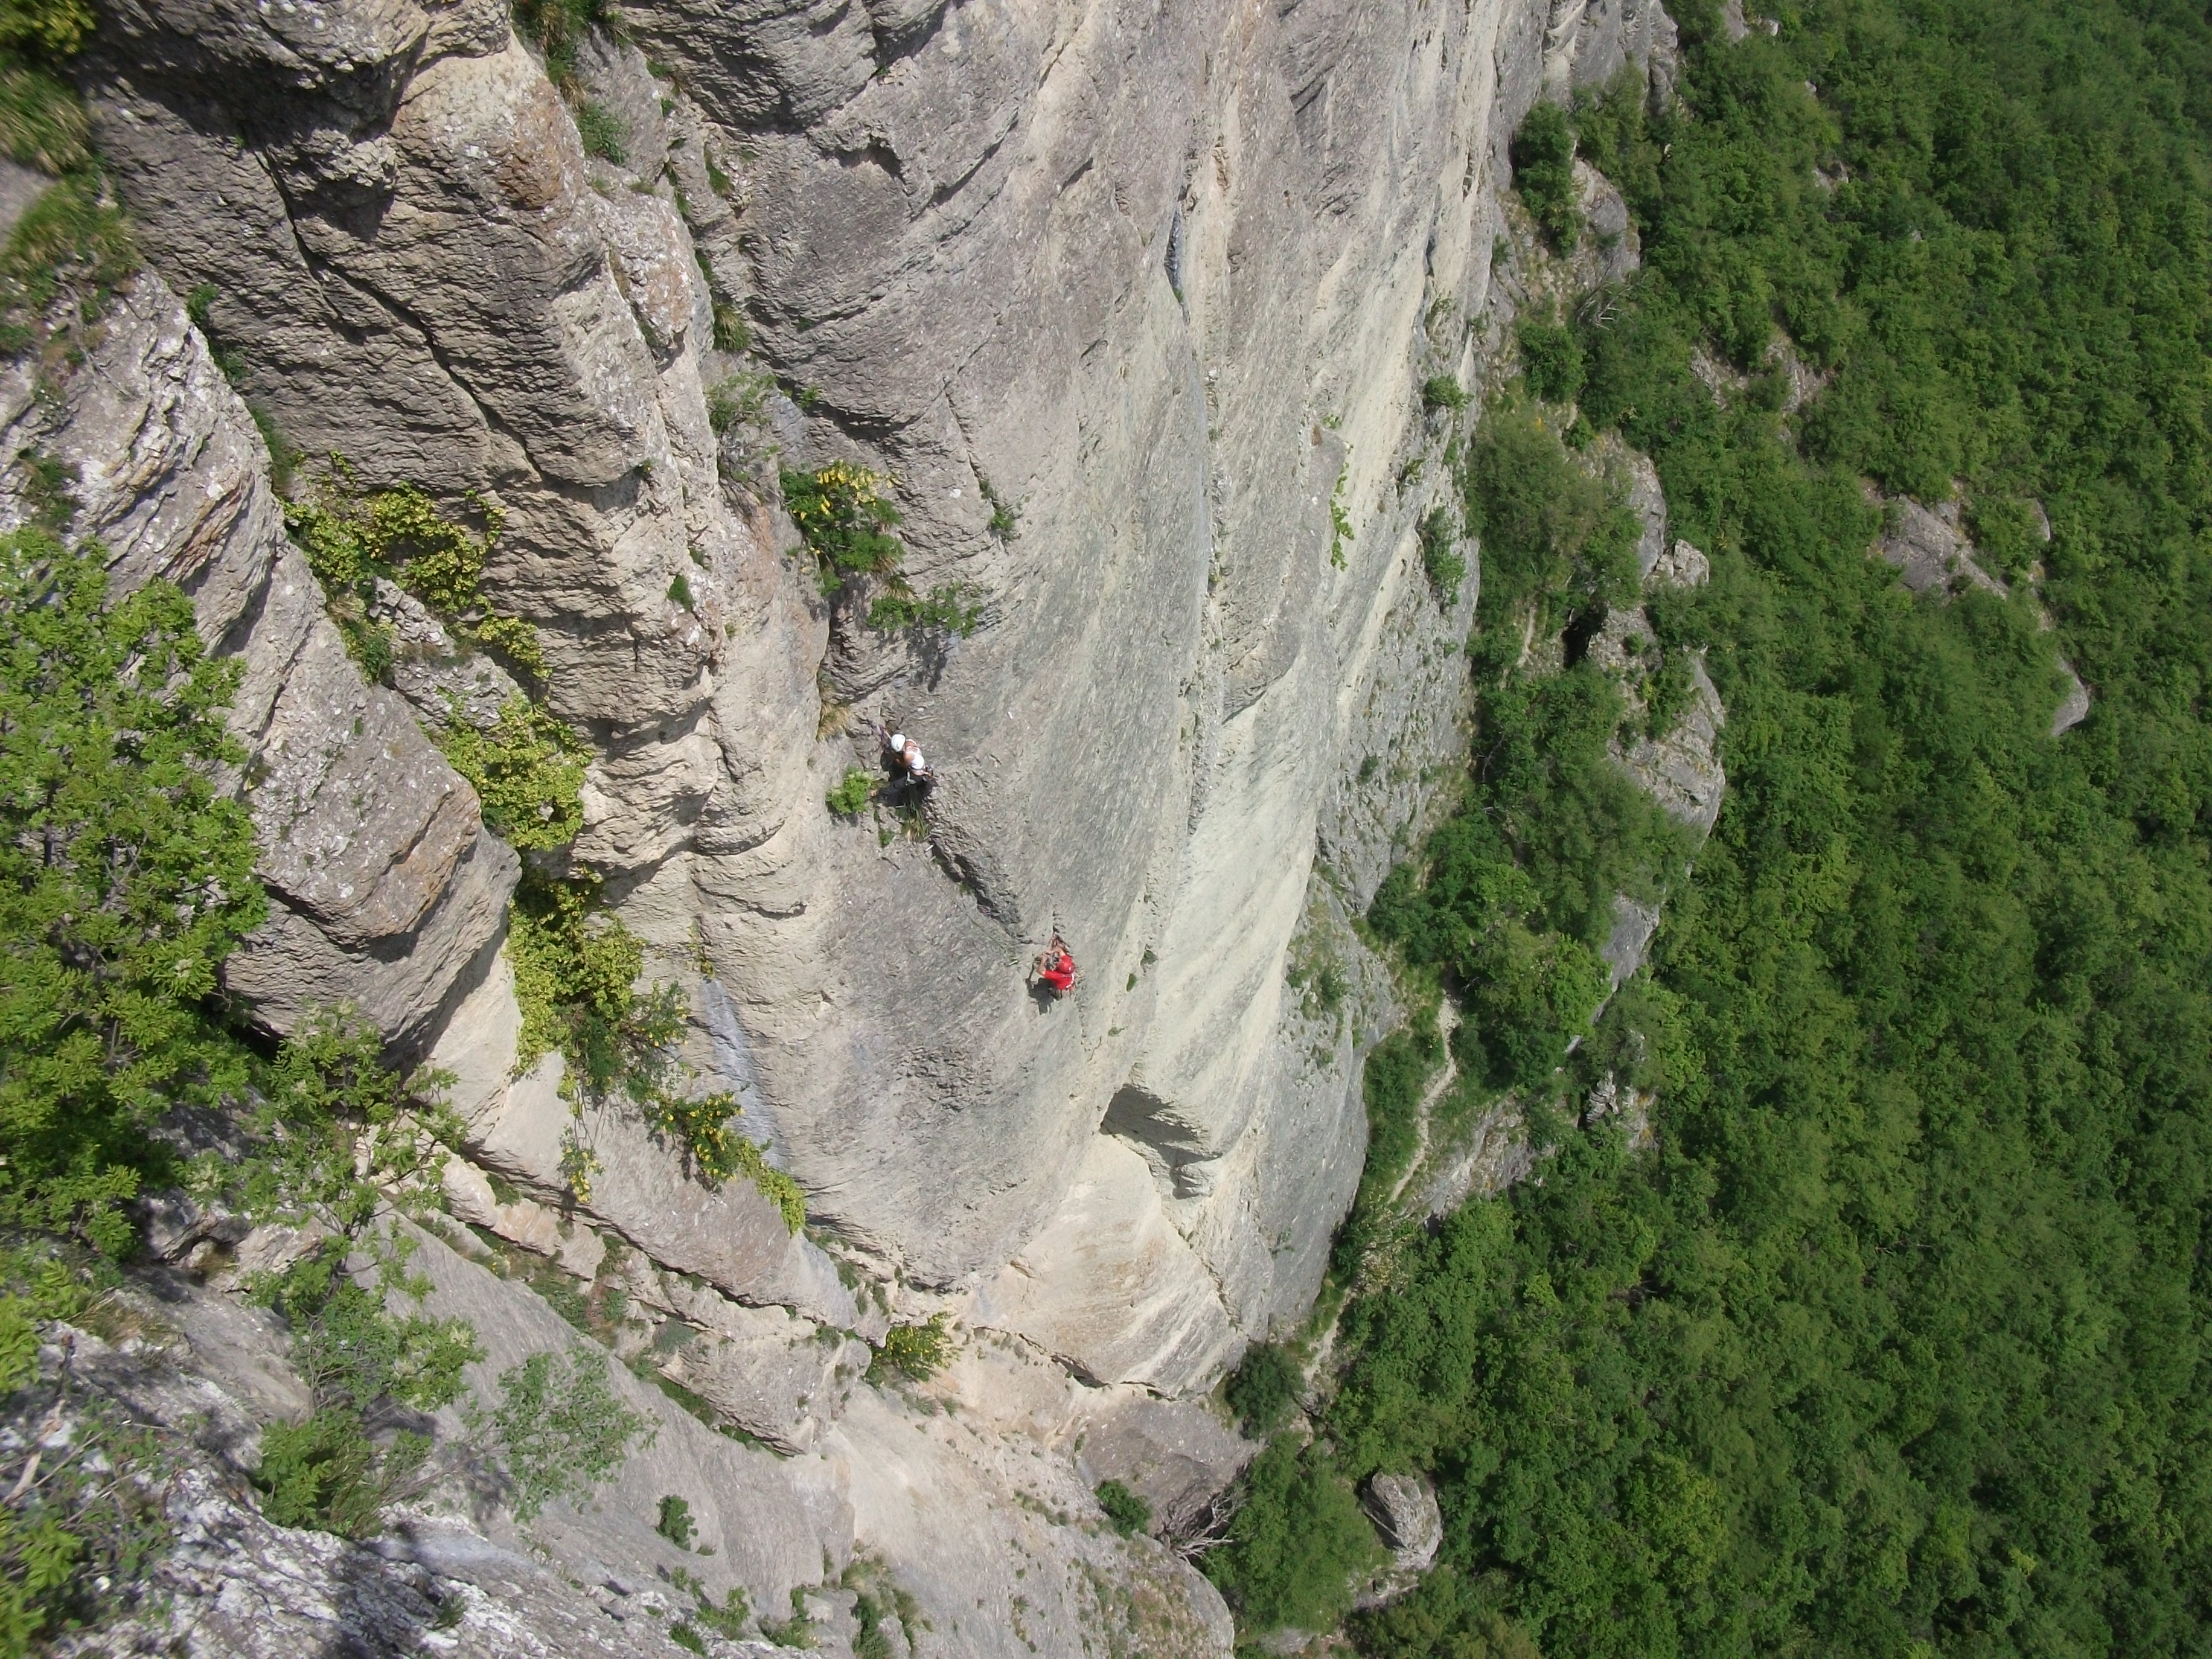 I 10 imperdibili posti dove arrampicare in Italia